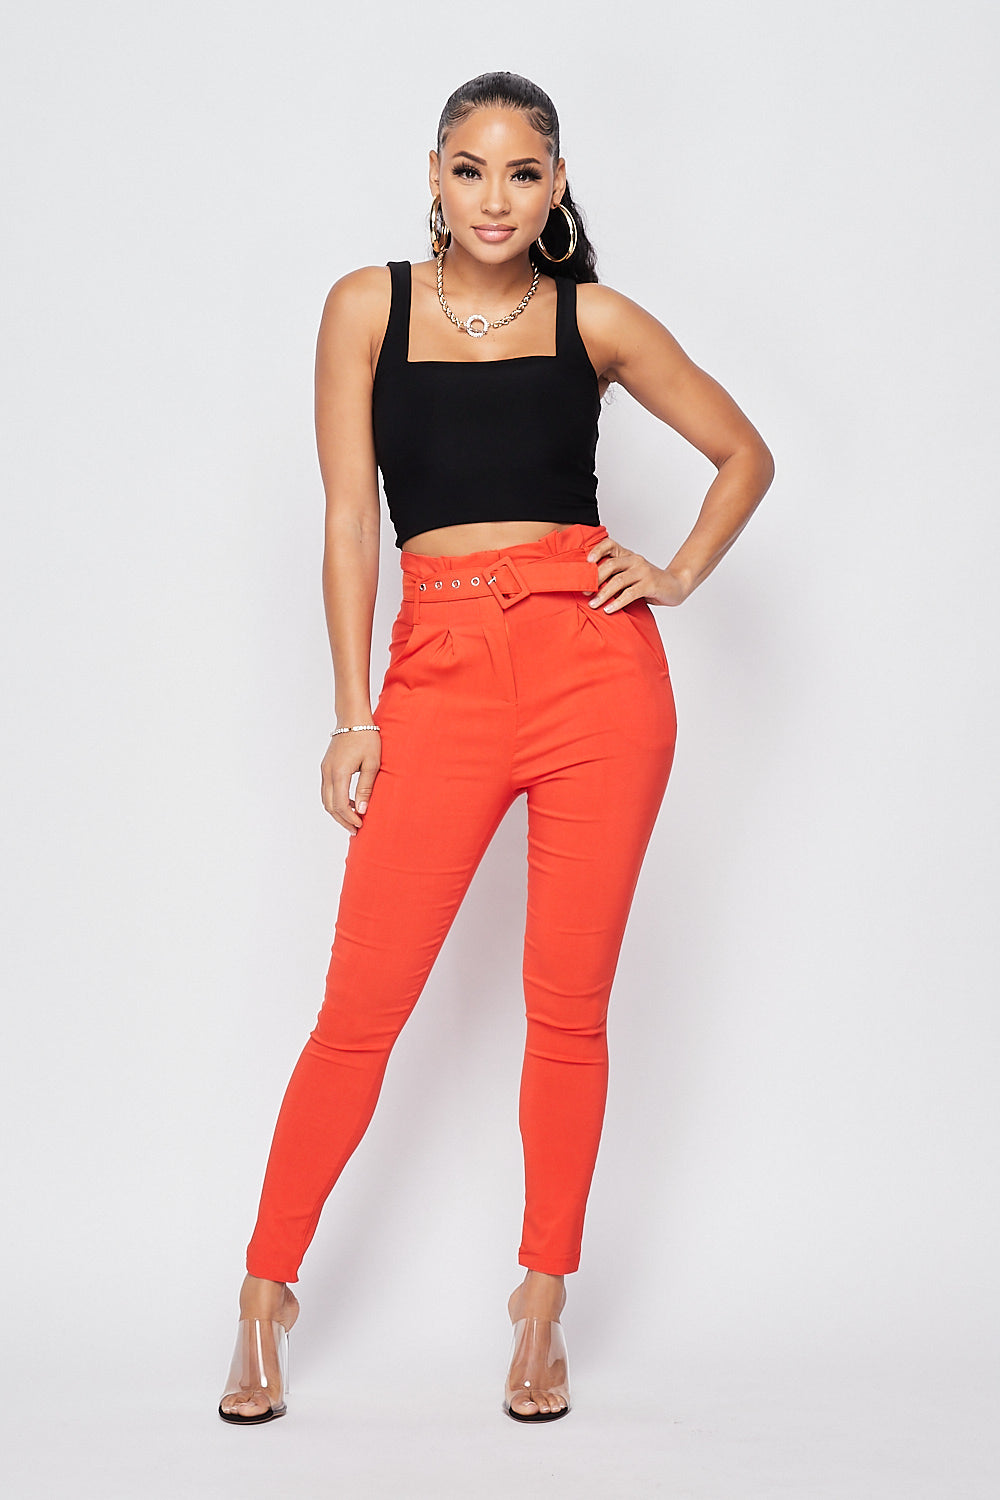 Sexy Belted High Waist Ankle Pants-ORANGE - Fashion House USA